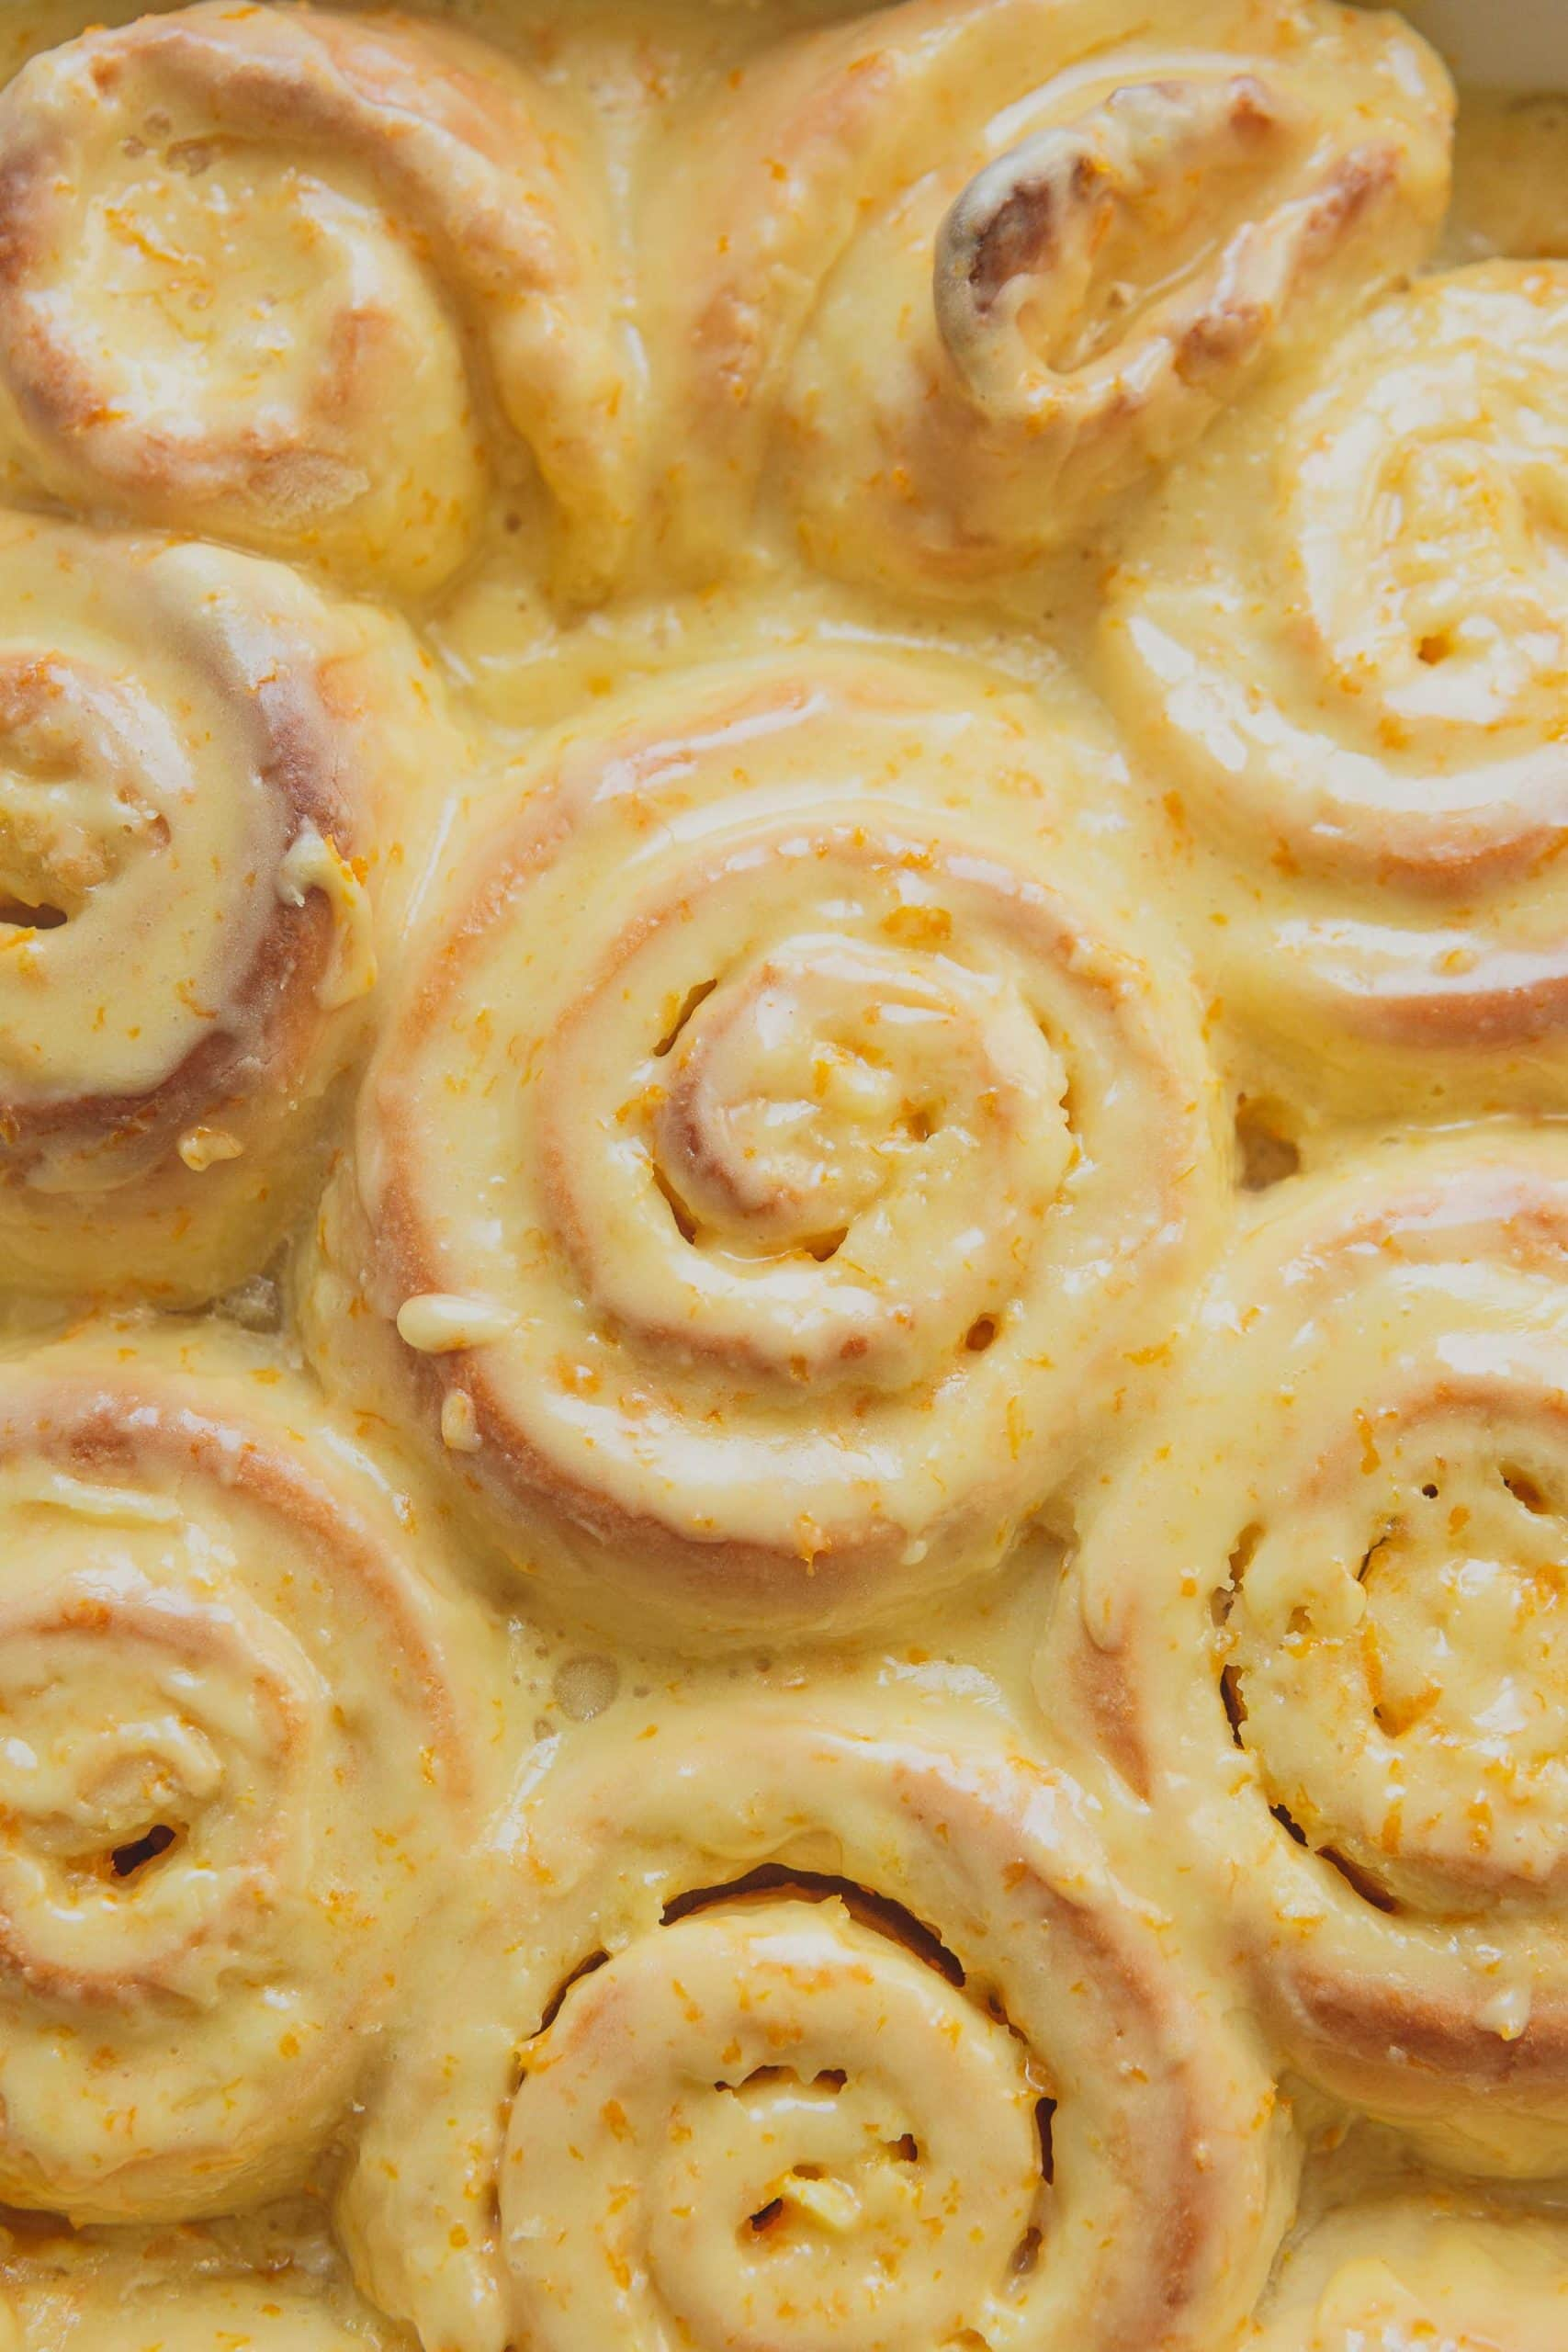 A close up, top view of a pan of orange rolls. They are topped with orange frosting.